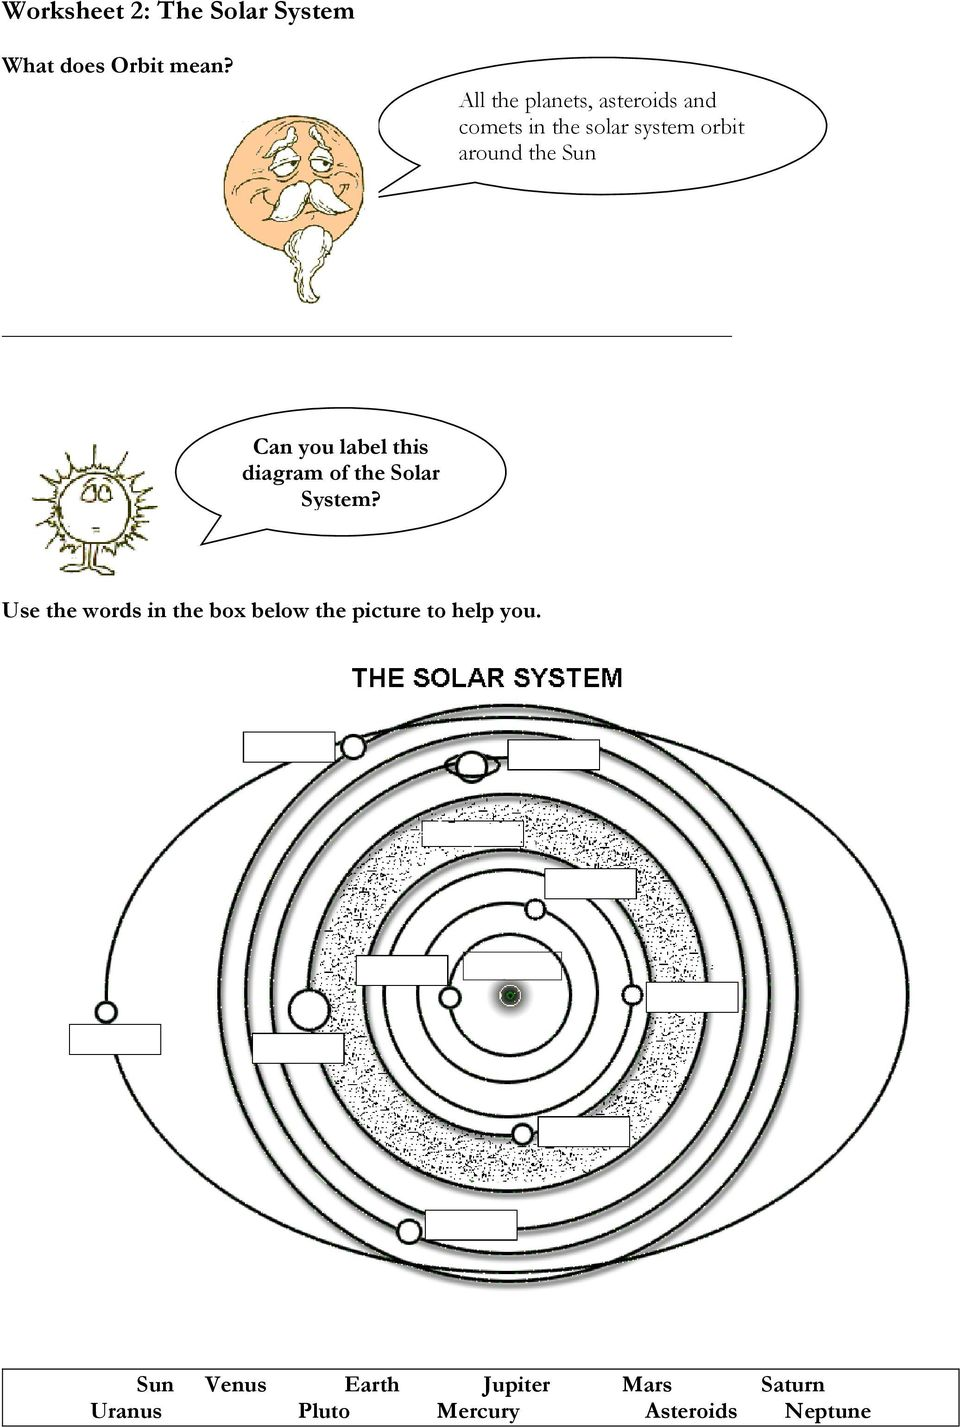 the Sun Can you label this diagram of the Solar System?